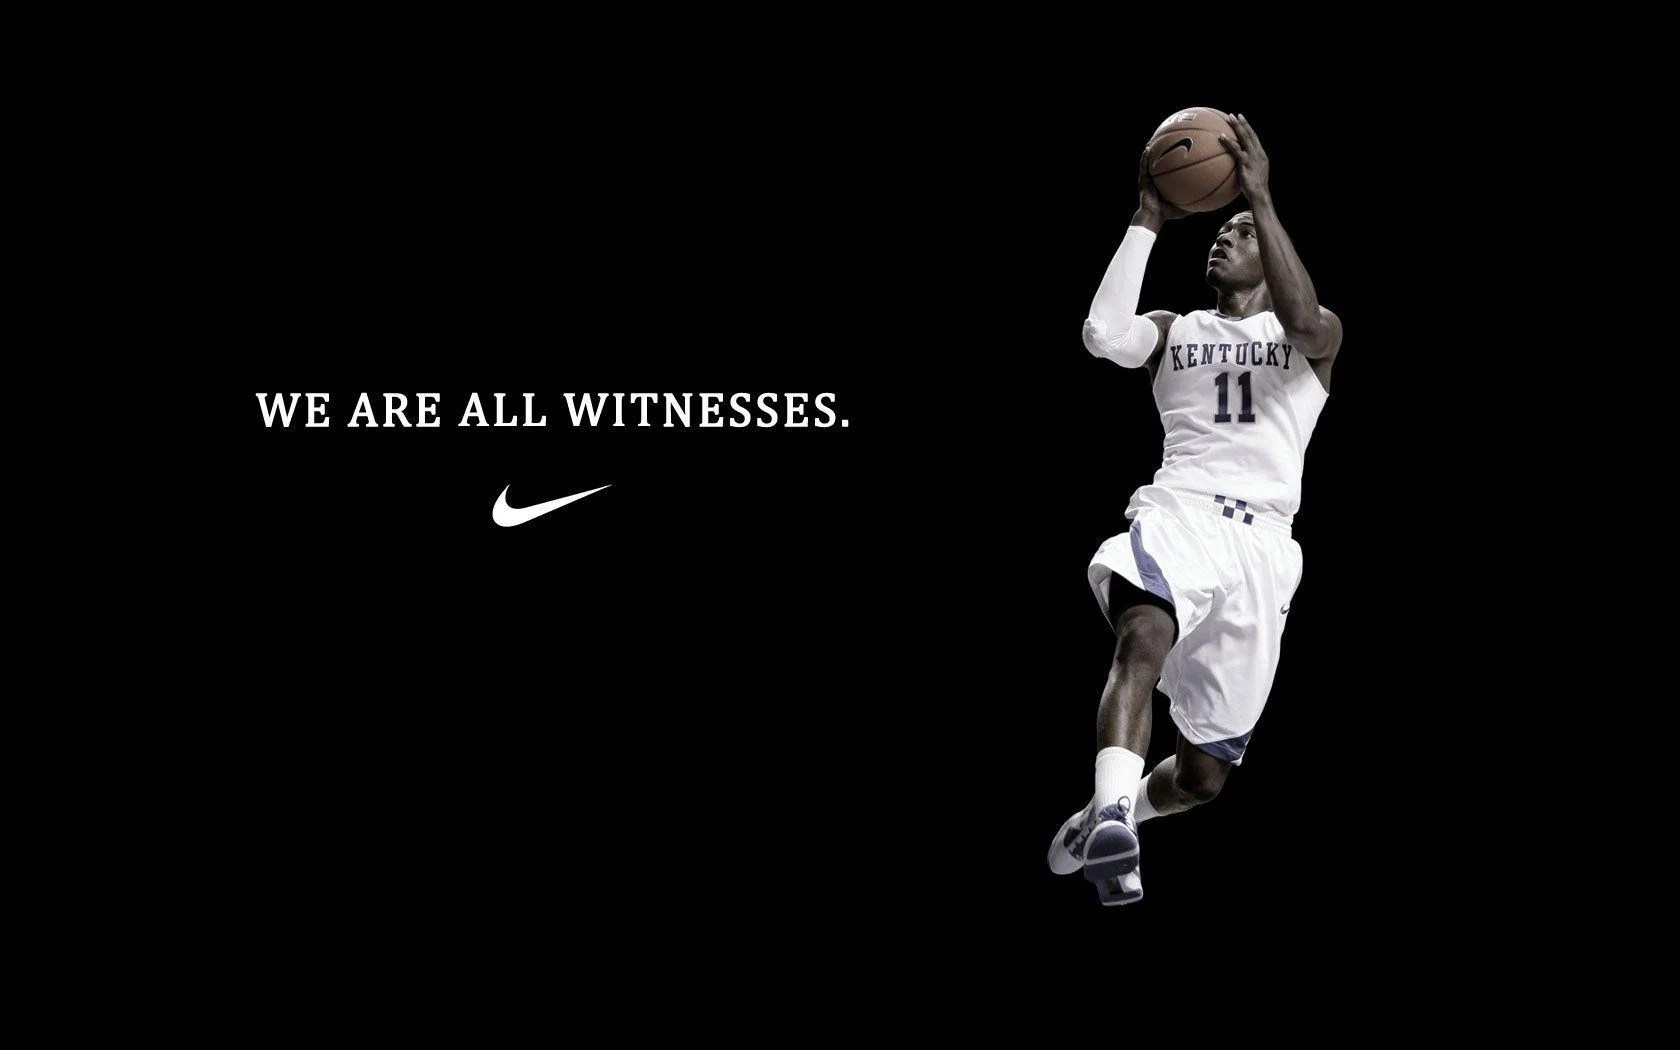 Basketball Nike Wallpaper - Art Wallpapers